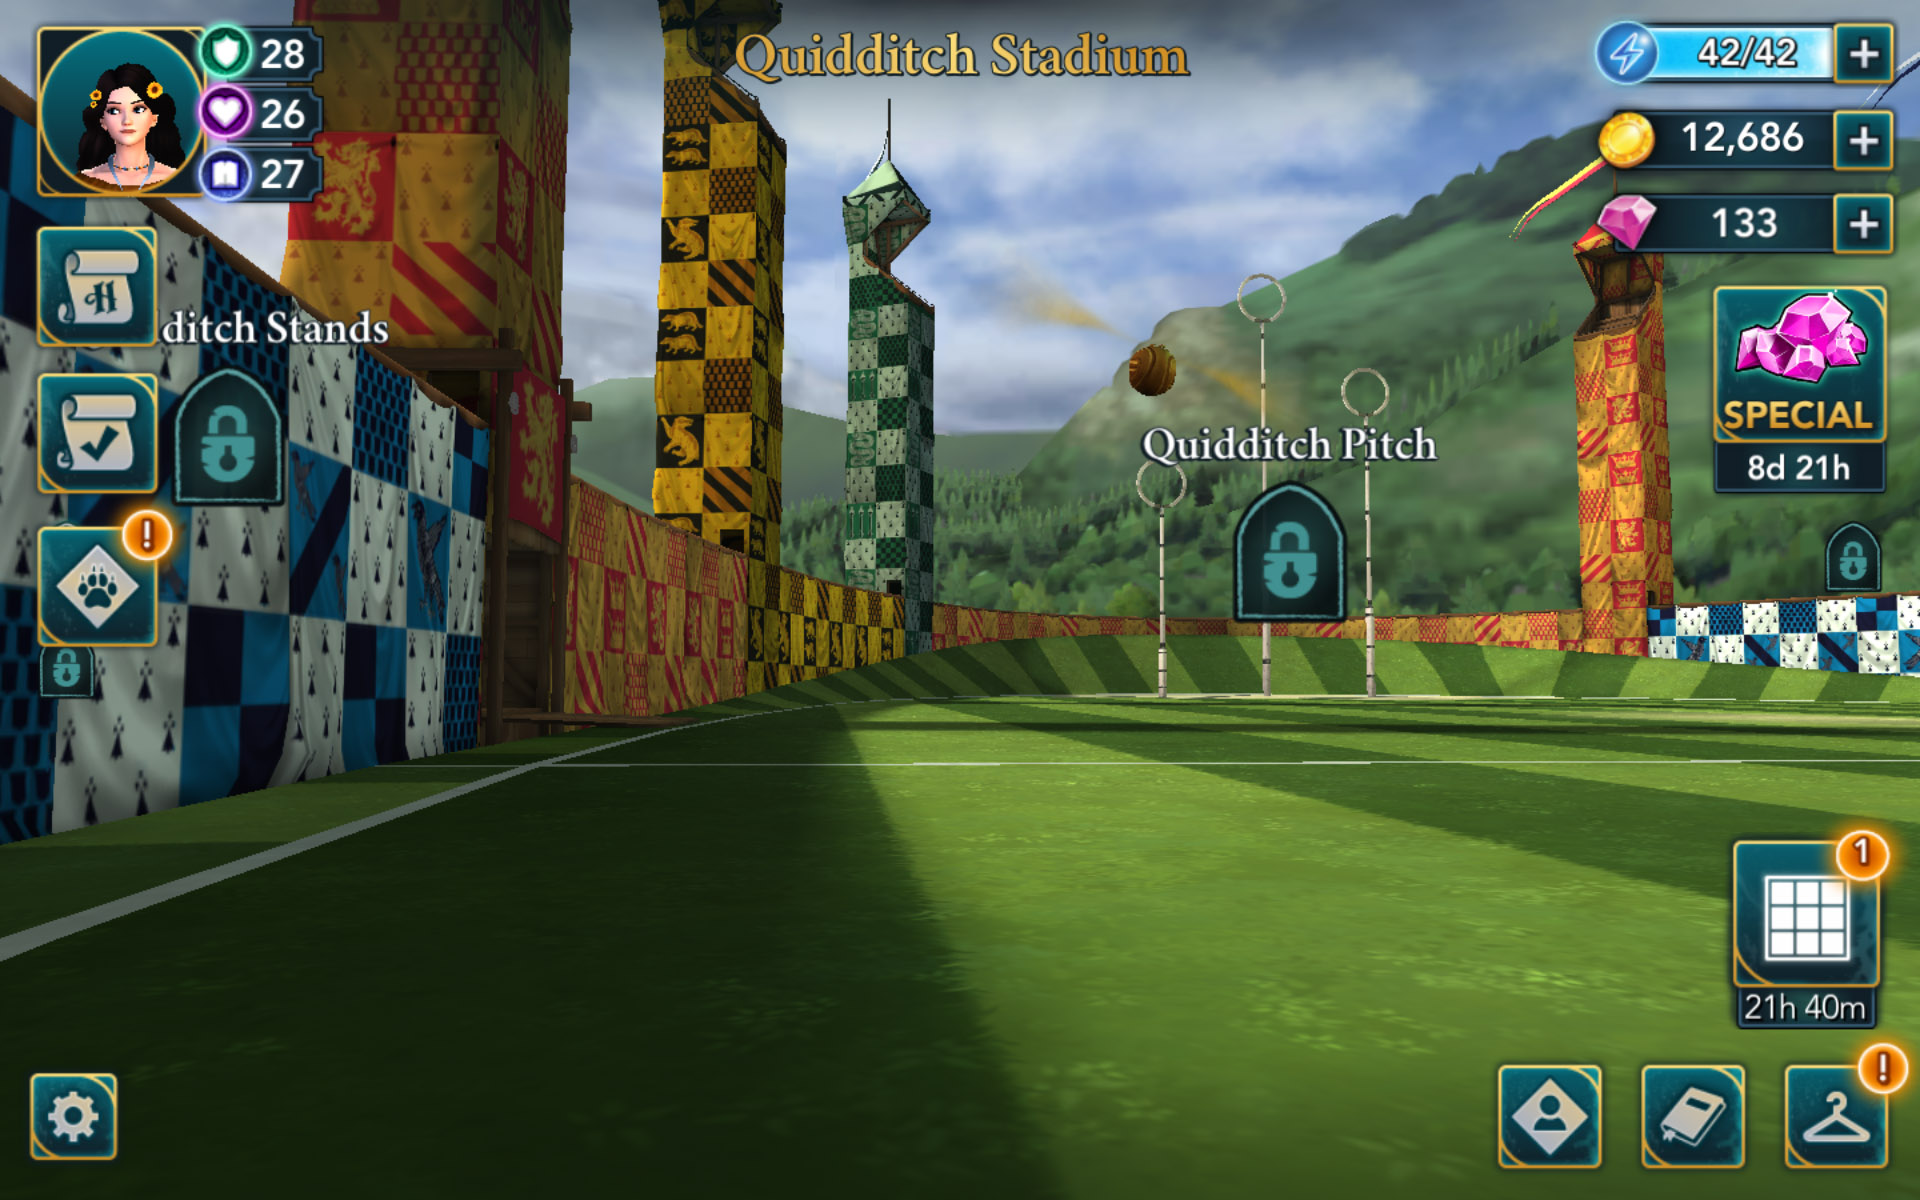 """A view of the Quidditch Stadium and a Golden Snitch is seen in this screenshot from """"Harry Potter: Hogwarts Mystery""""."""